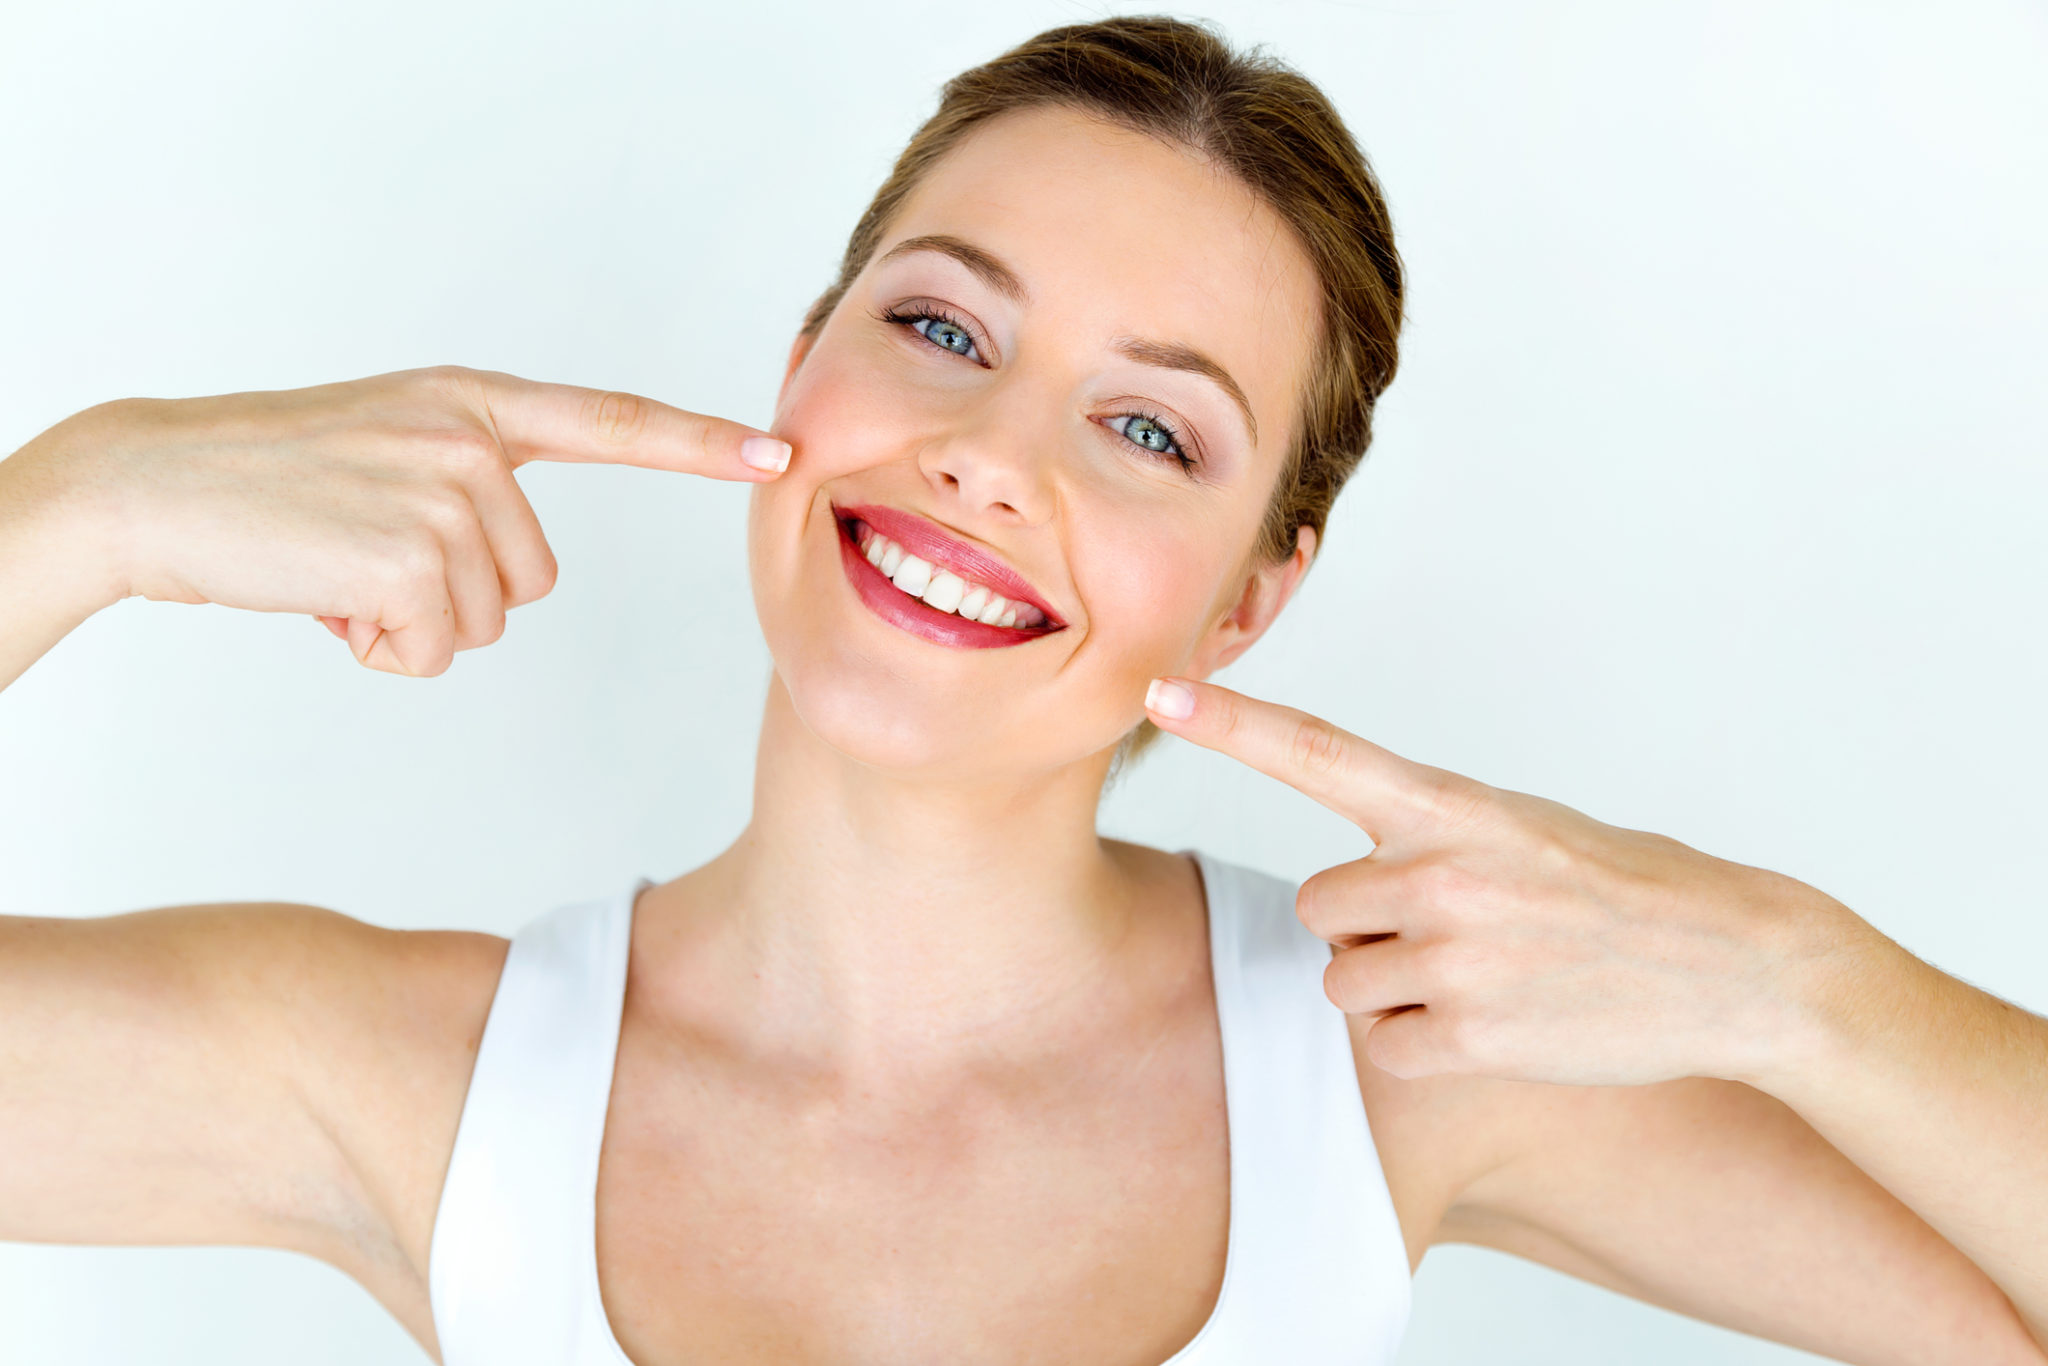 Editing for the Perfect Smile in Photoshop